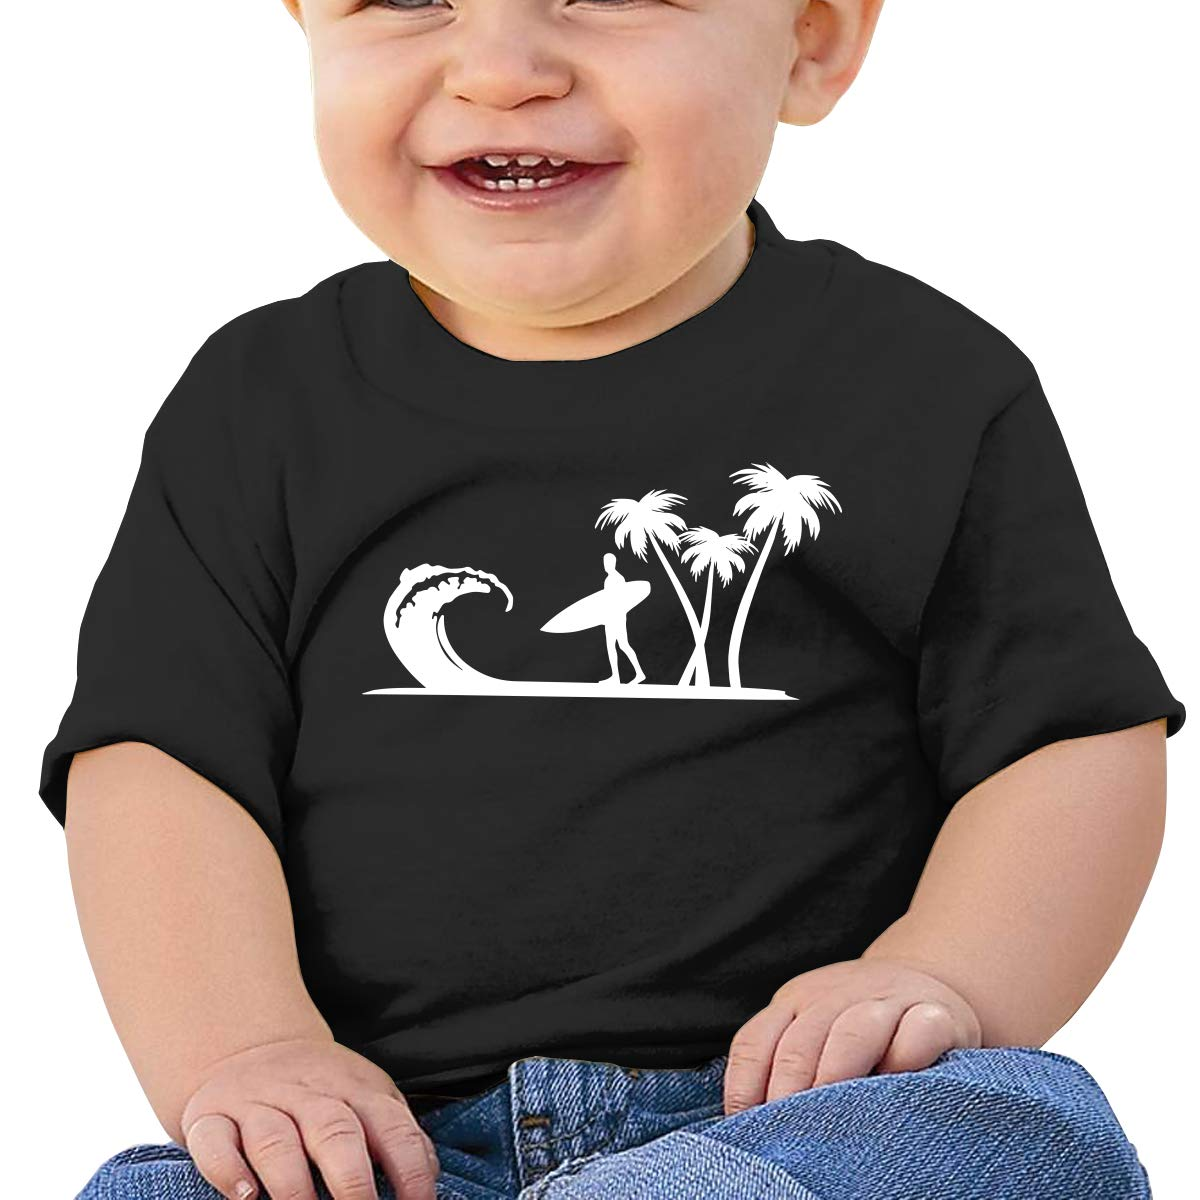 Surfer Palm Trees Newborn Baby Newborn Short Sleeve Tee Shirt 6-24 Month Soft Tops